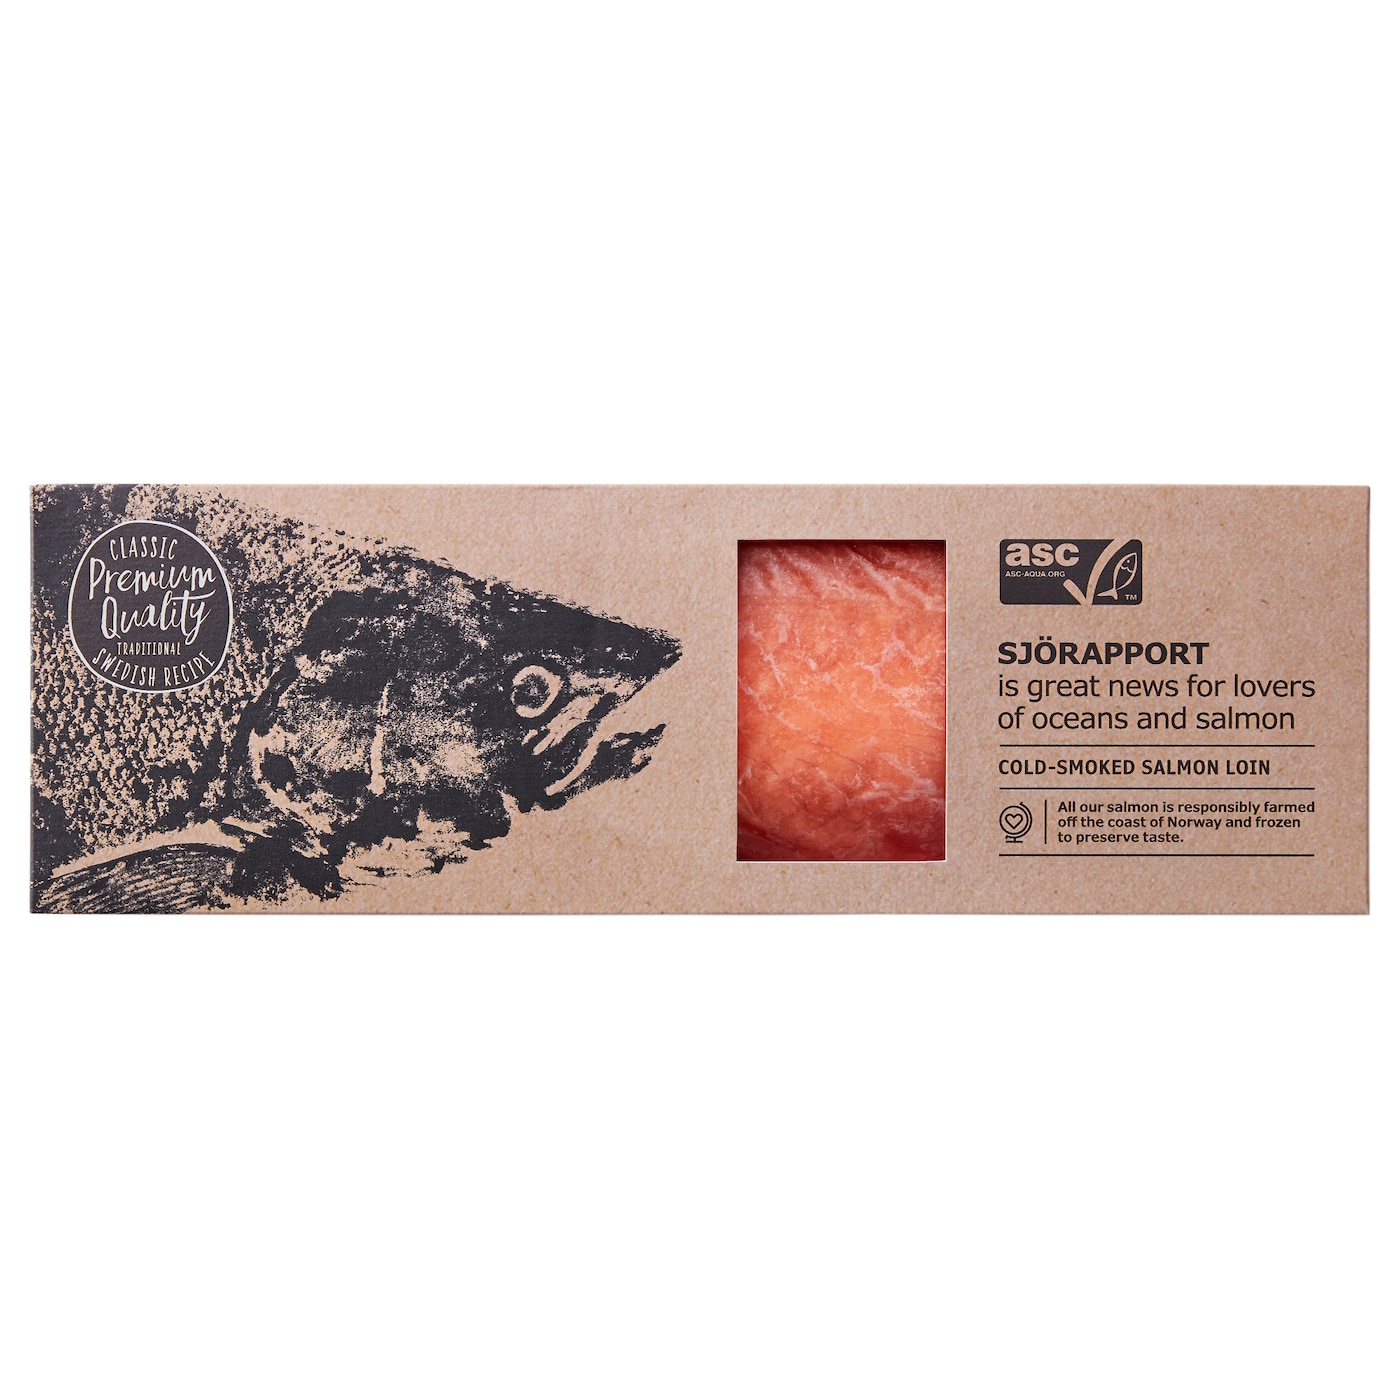 IKEA SJÖRAPPORT cold smoked salmon loin Salmon is a good source of protein and Omega-3 fatty acids.